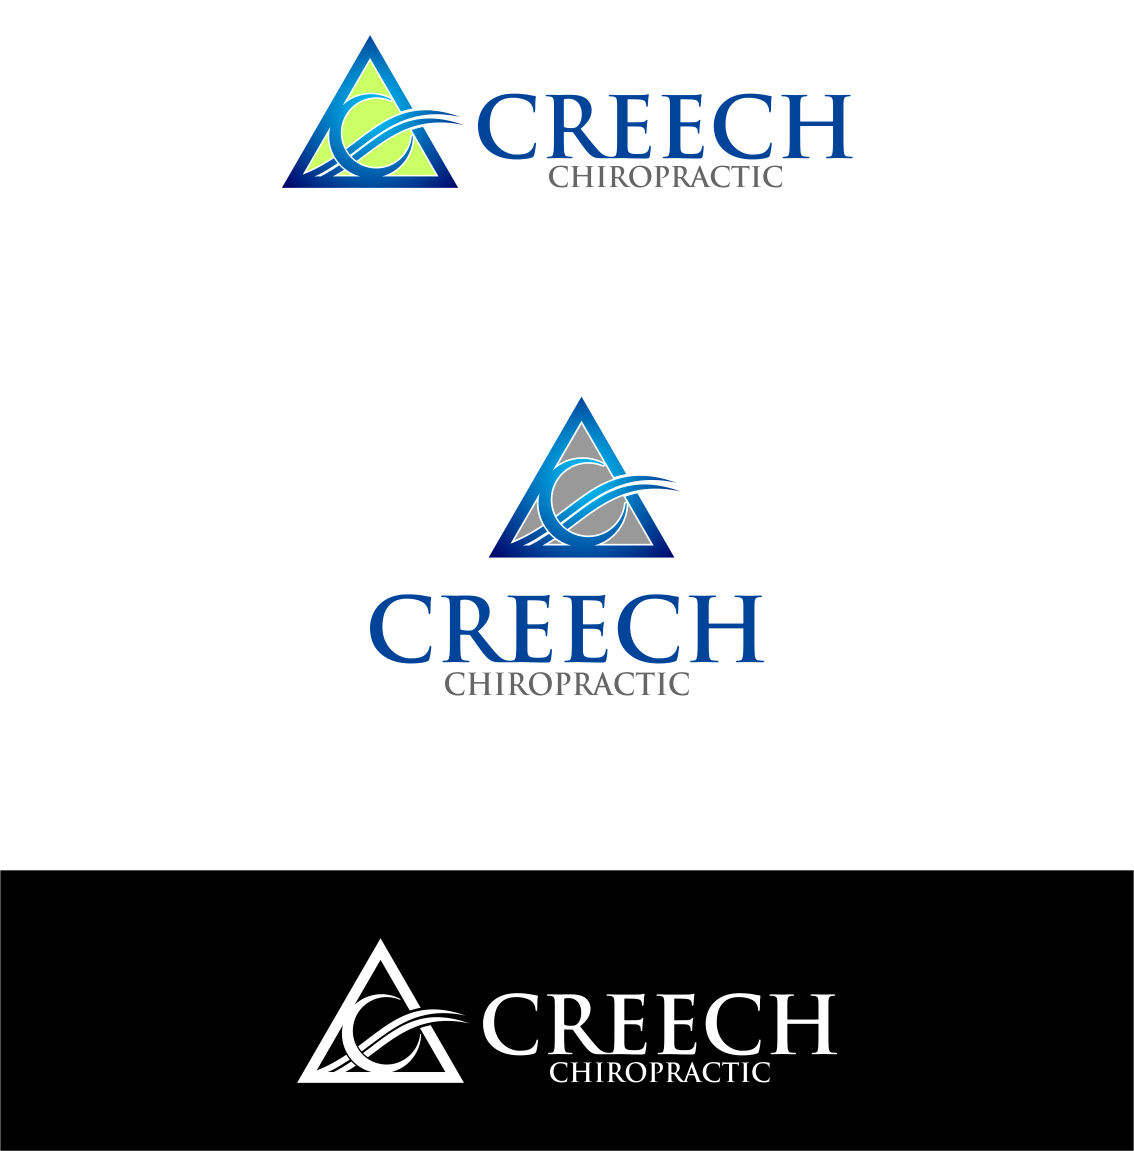 Logo Design by Agus Martoyo - Entry No. 123 in the Logo Design Contest Imaginative Logo Design for Creech Chiropractic.